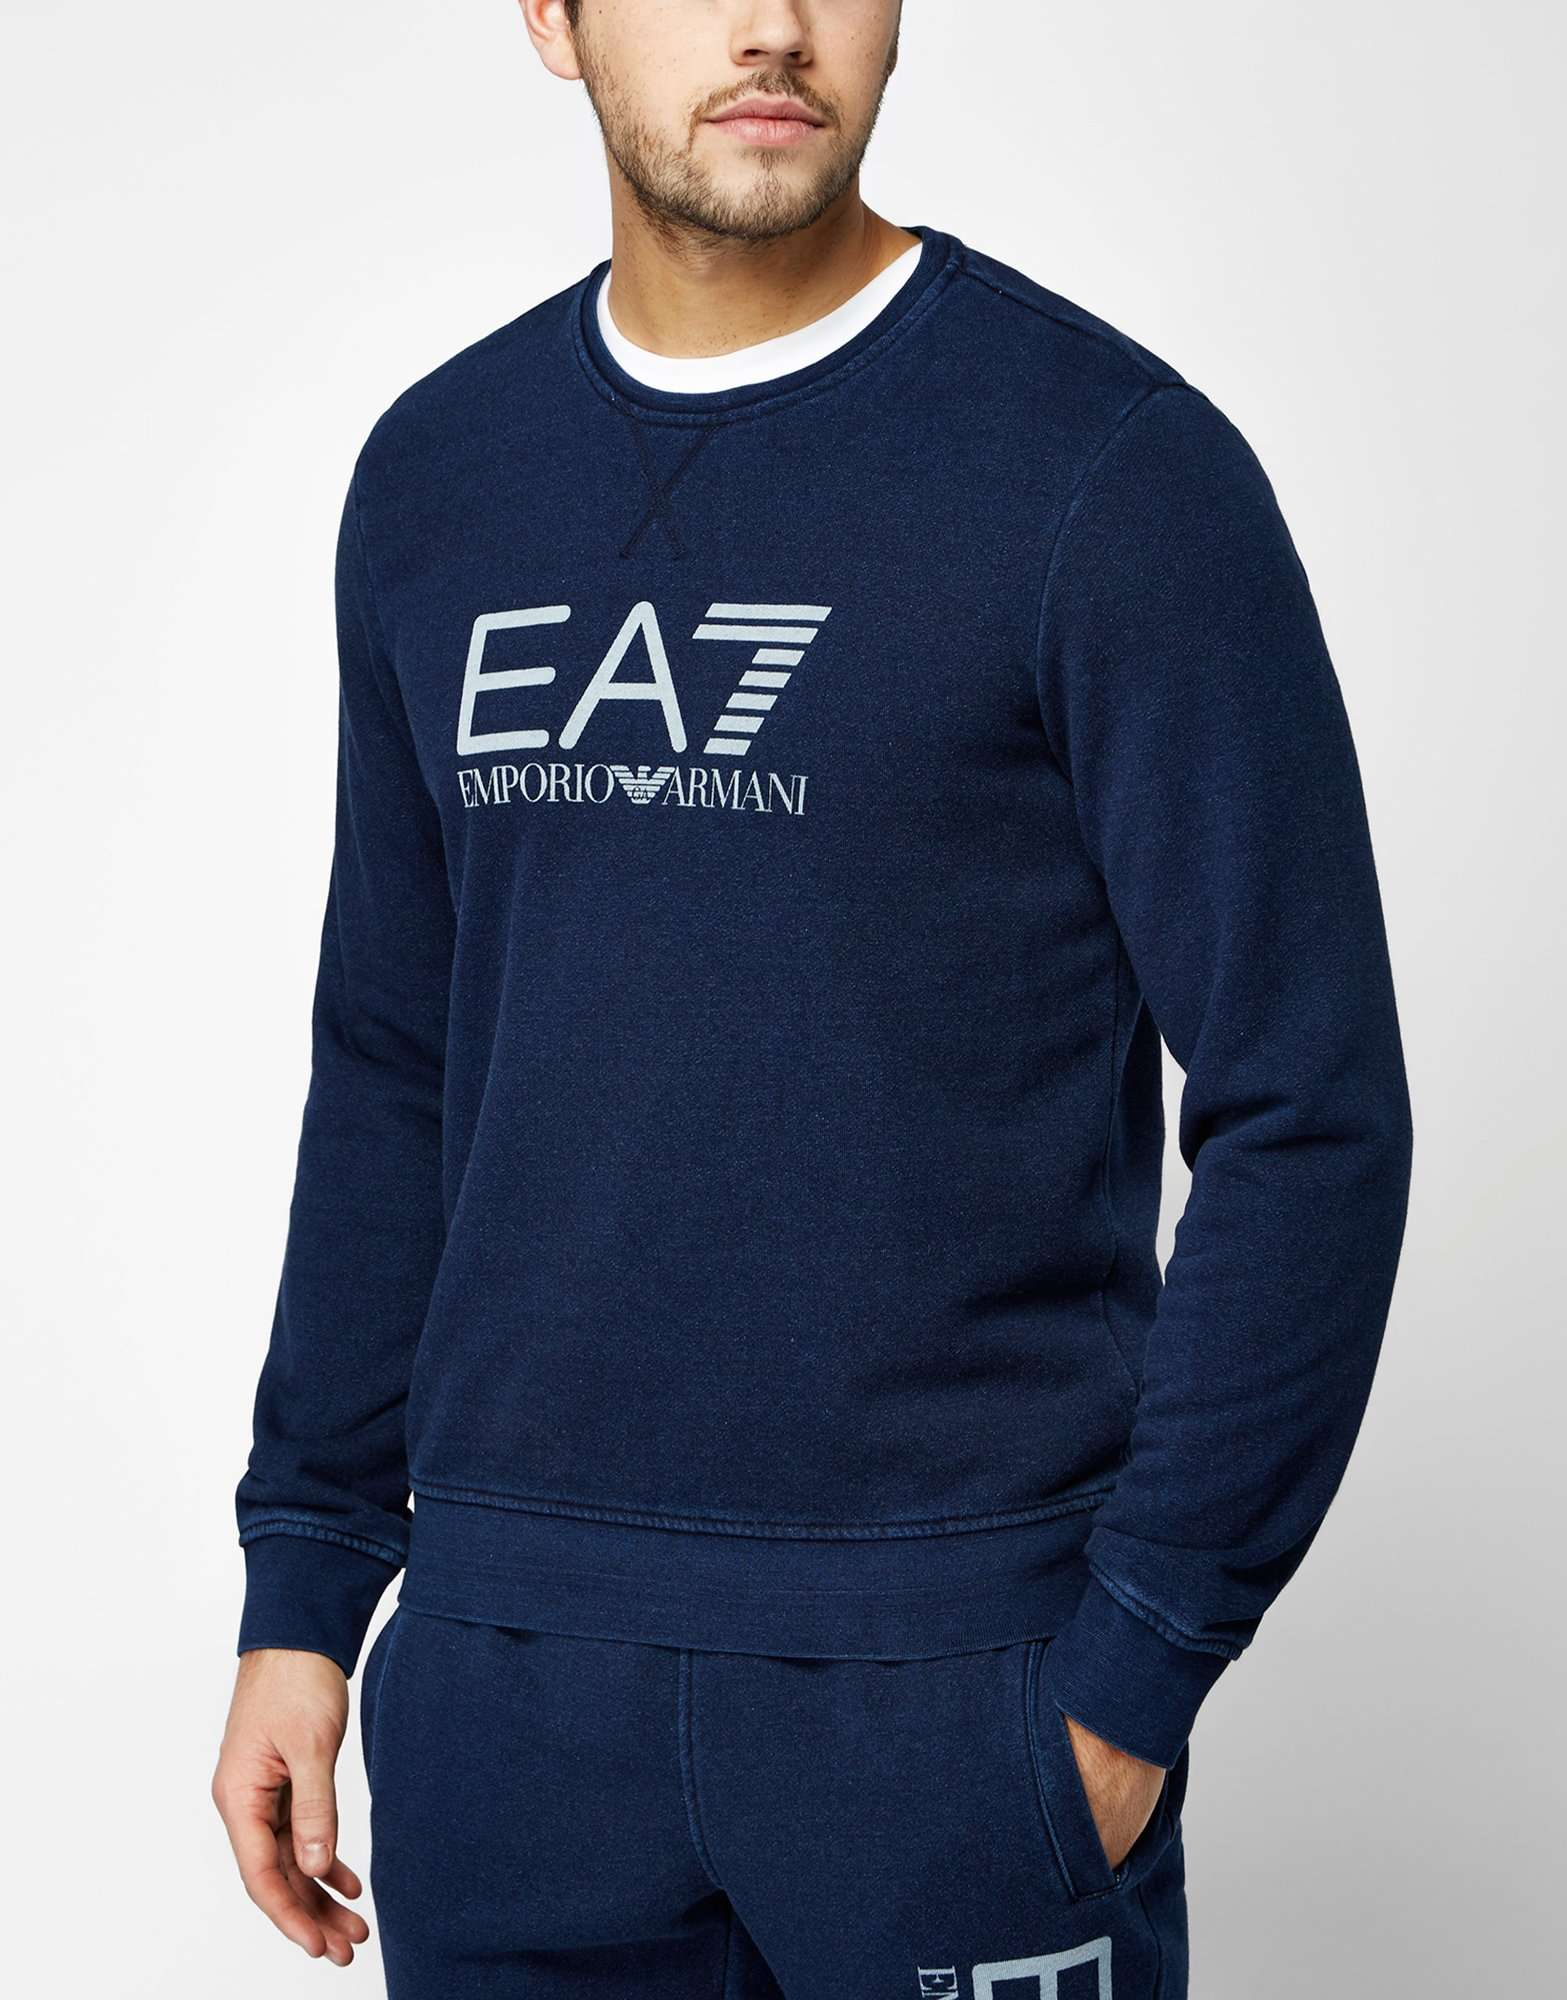 6e8d063809d Premium does sportswear with the latest EA7 Emporio Armani range here Mainline  Menswear A stylish yet